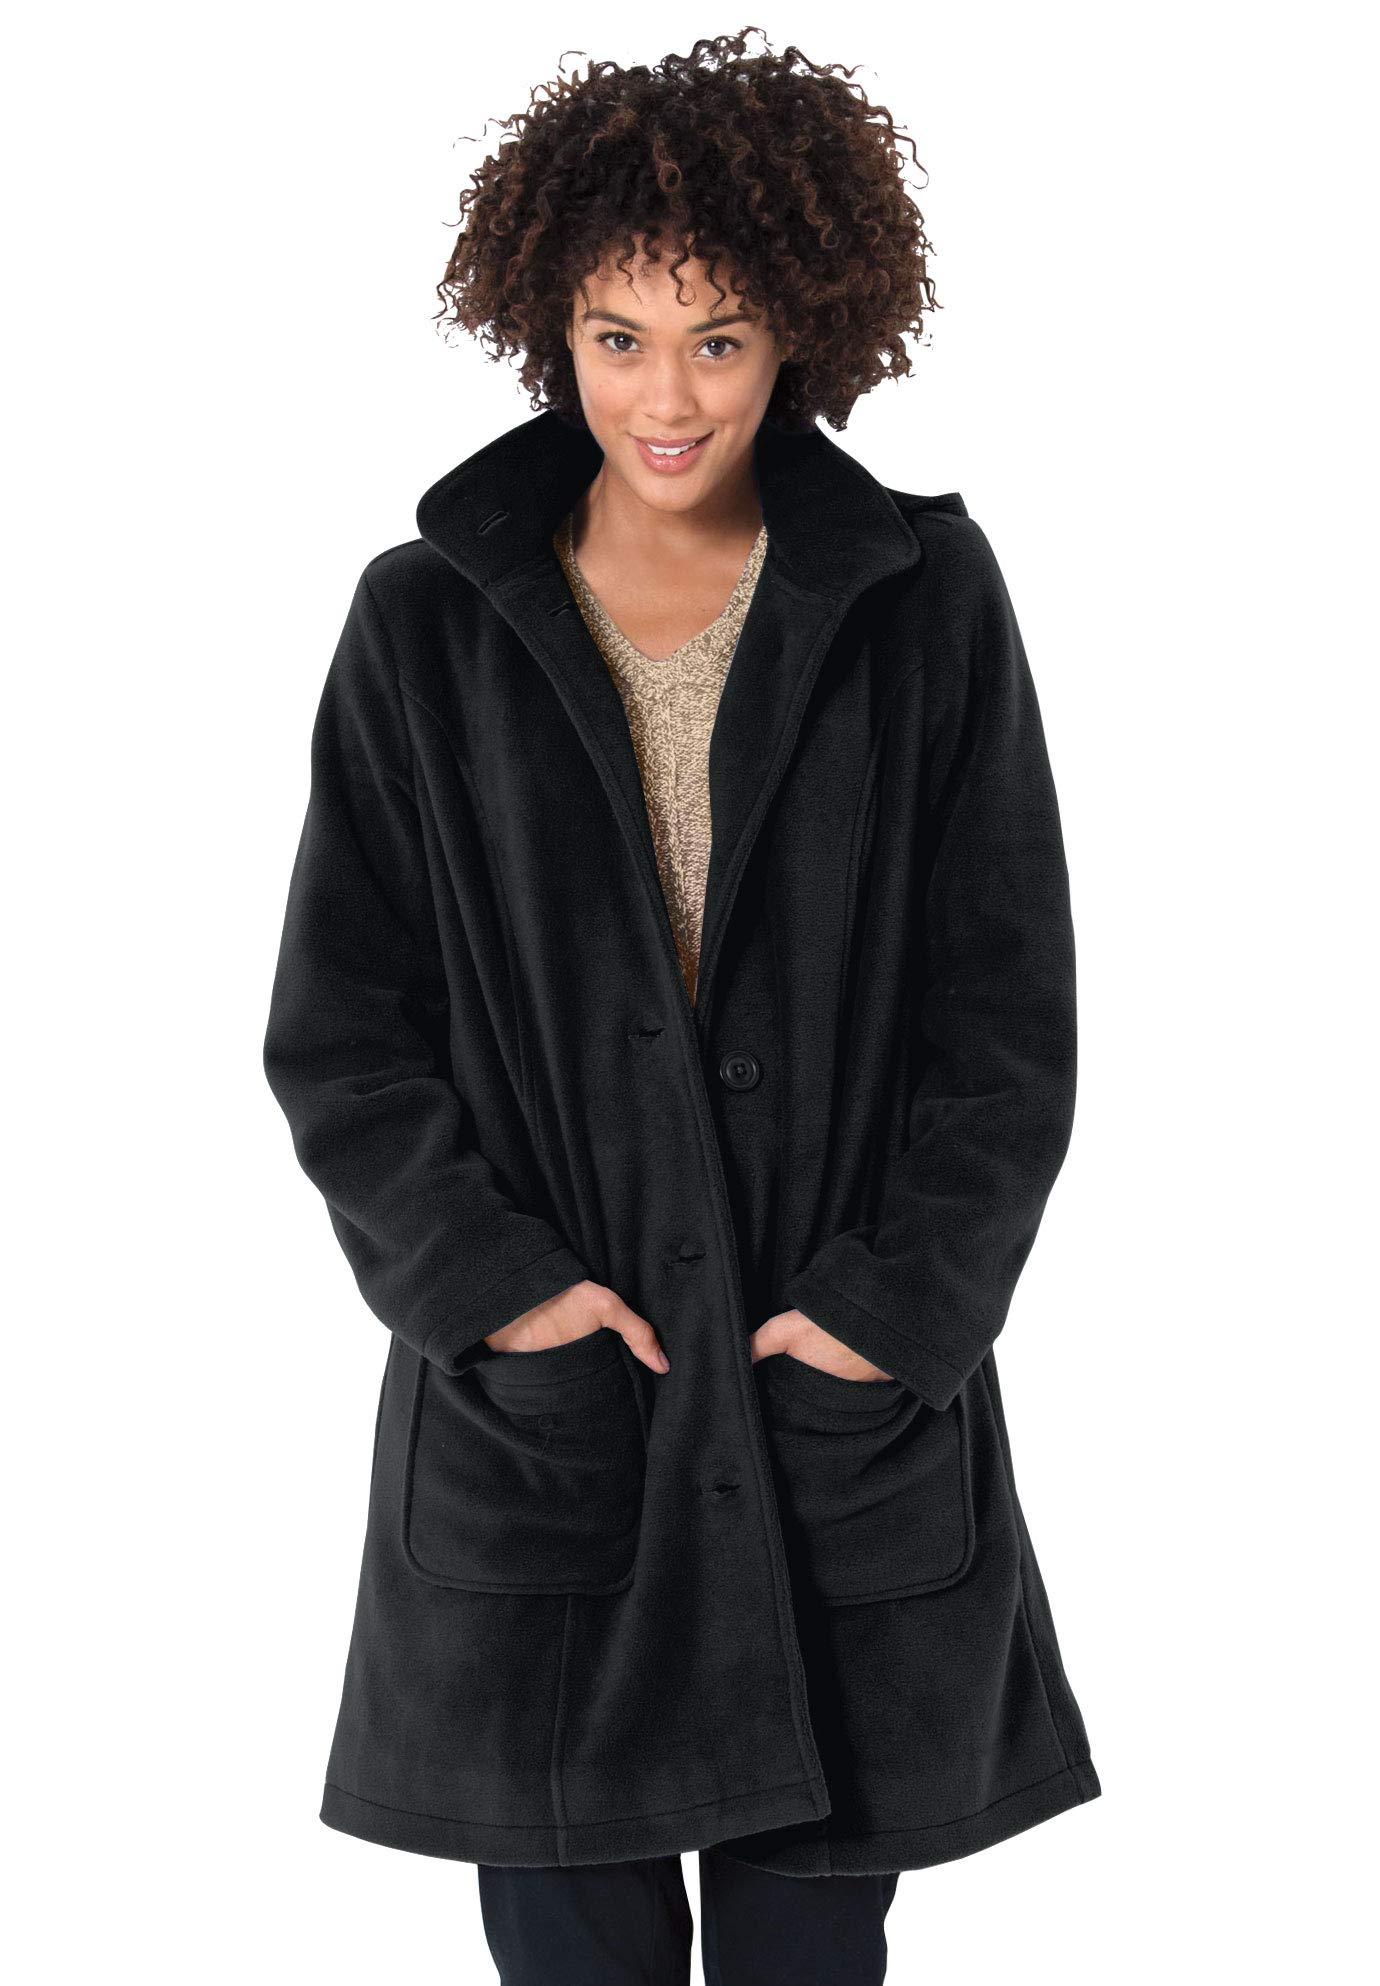 Woman Within Women's Plus Size Hooded A-Line Fleece Coat - Black, 24 W by Woman Within